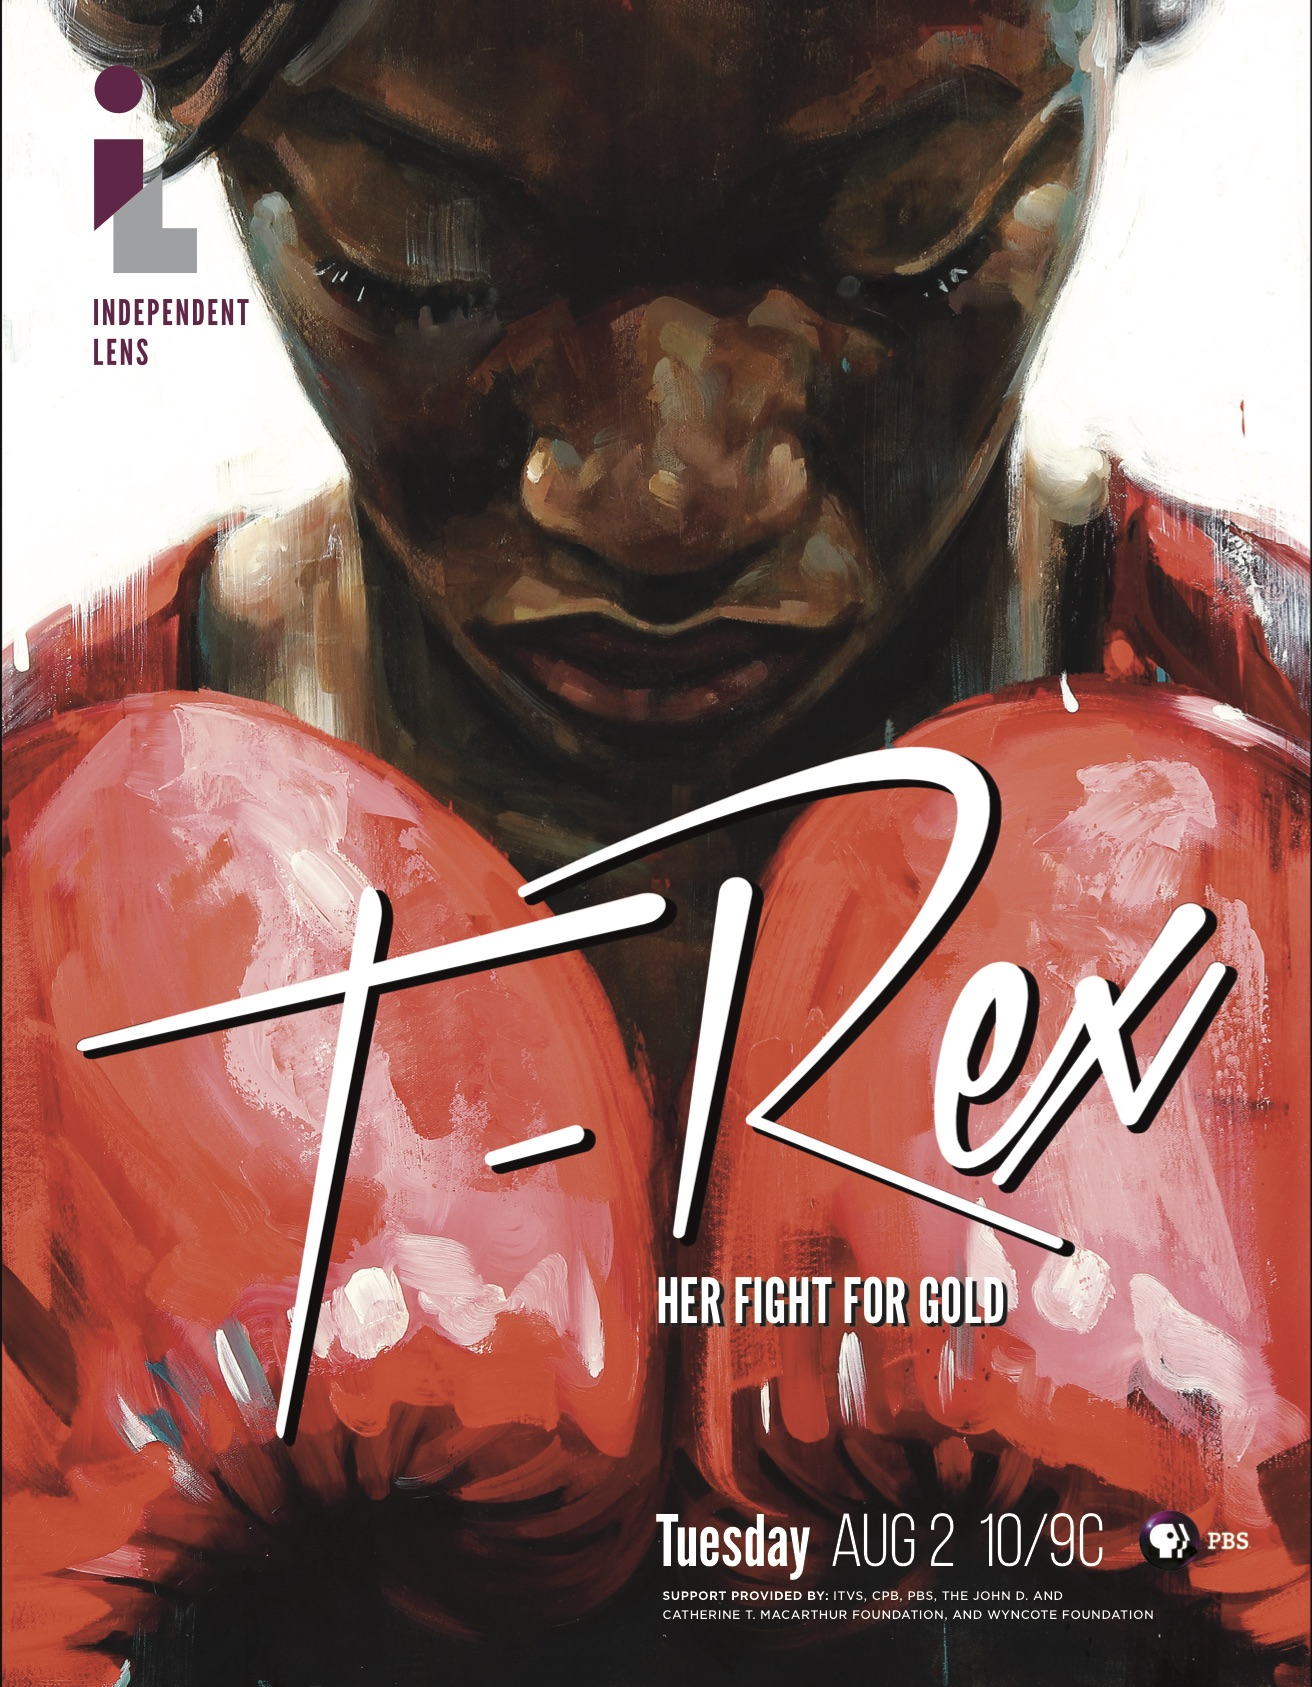 T-Rex: Her Fight for Gold